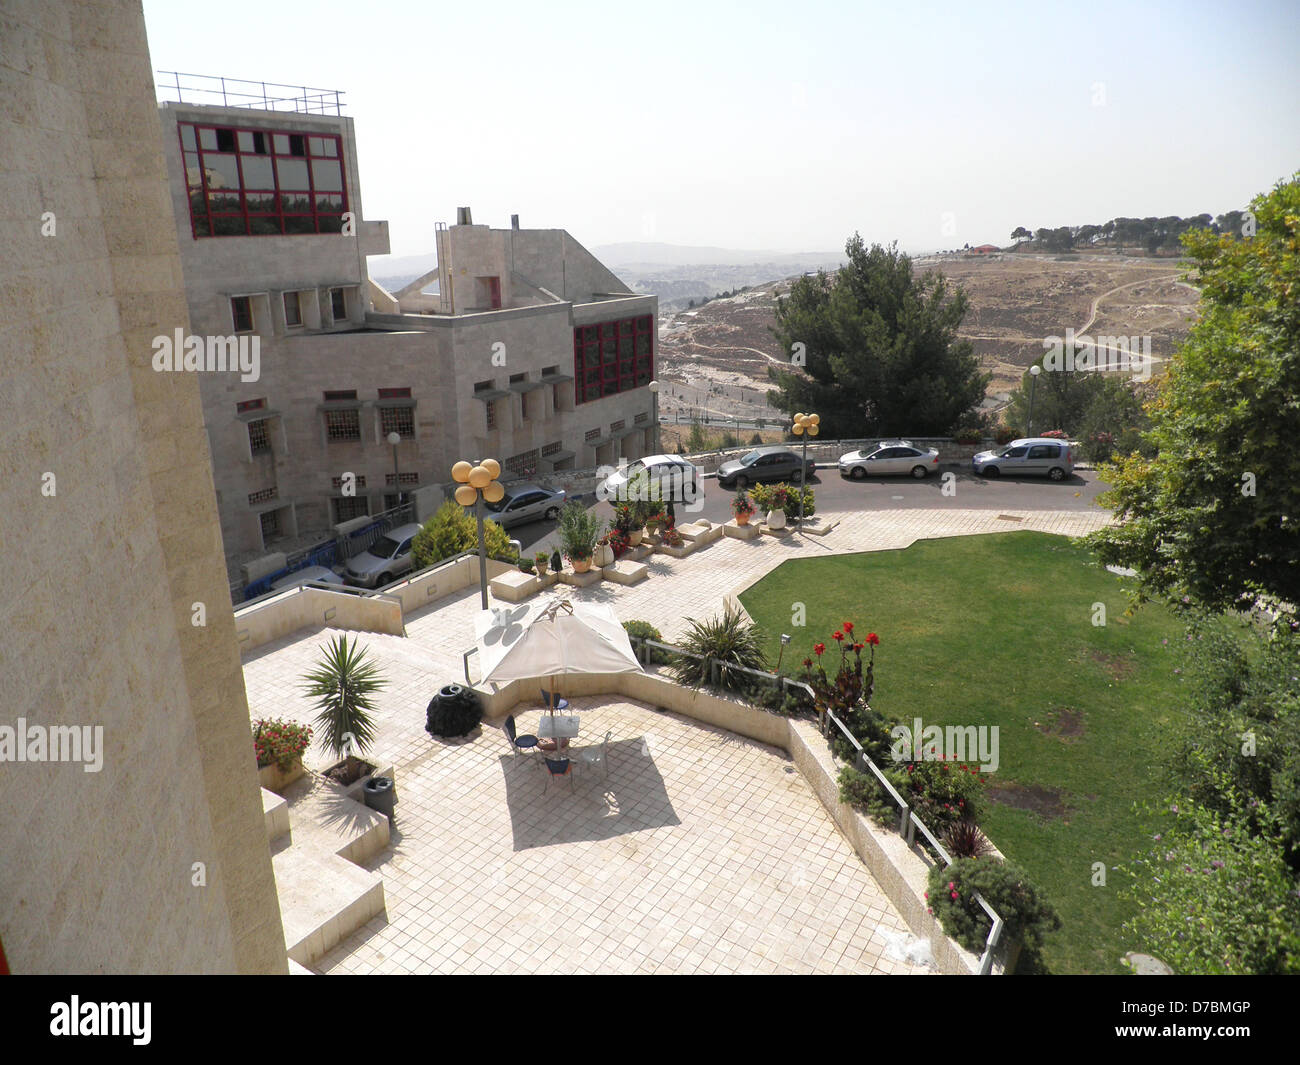 View from the Bezalel Academy of Arts and Design, Jerusalem - Stock Image